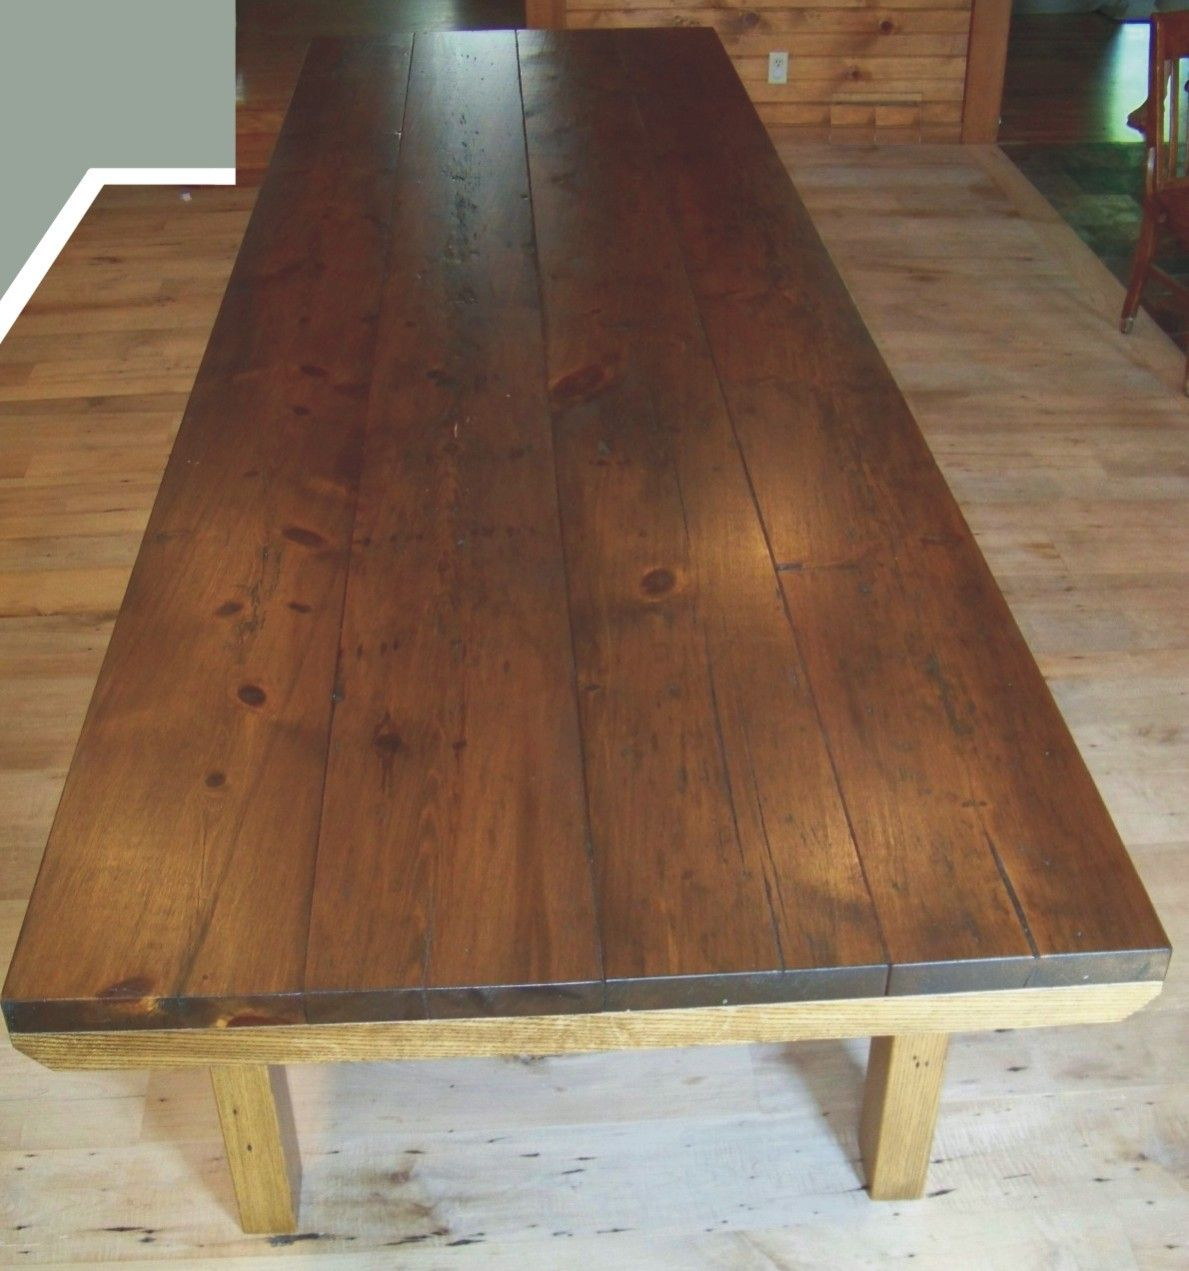 12 Foot Dining Table Staining A Wood Table Home Decor